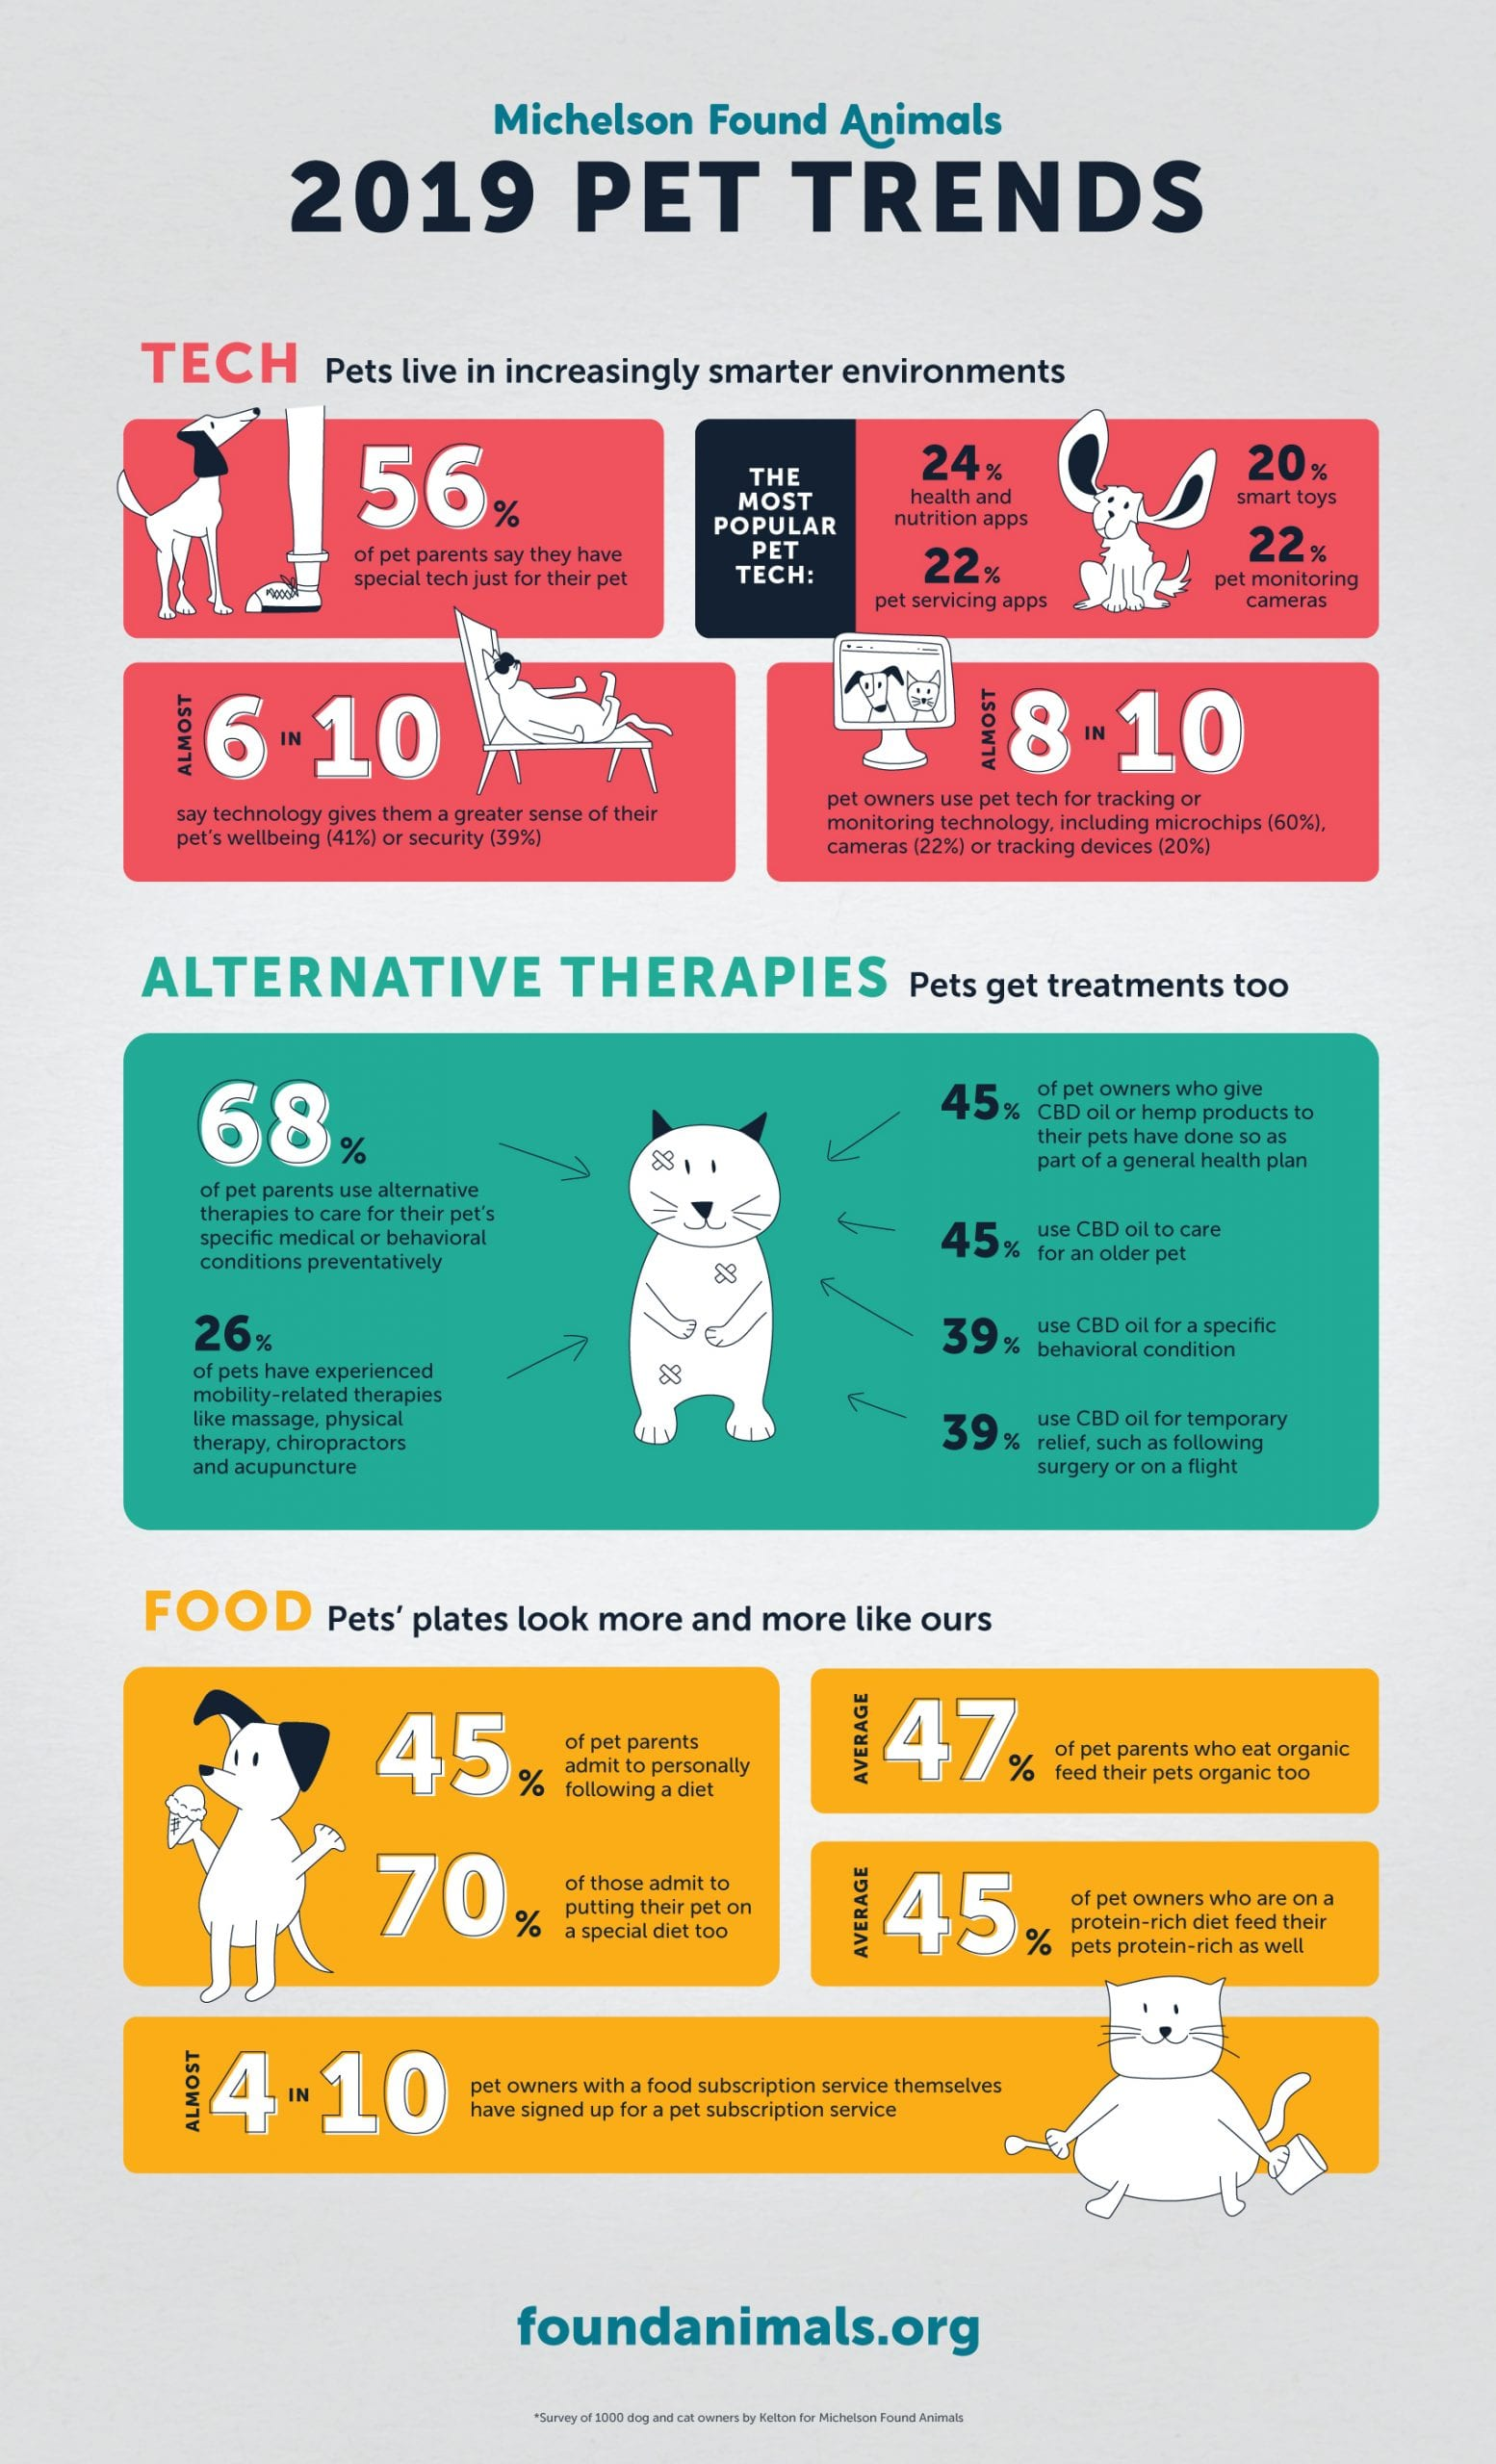 An infographic for Michelson Found Animals 2019 Pet Trends in the areas of Tech, Alternative Therapies, and Food